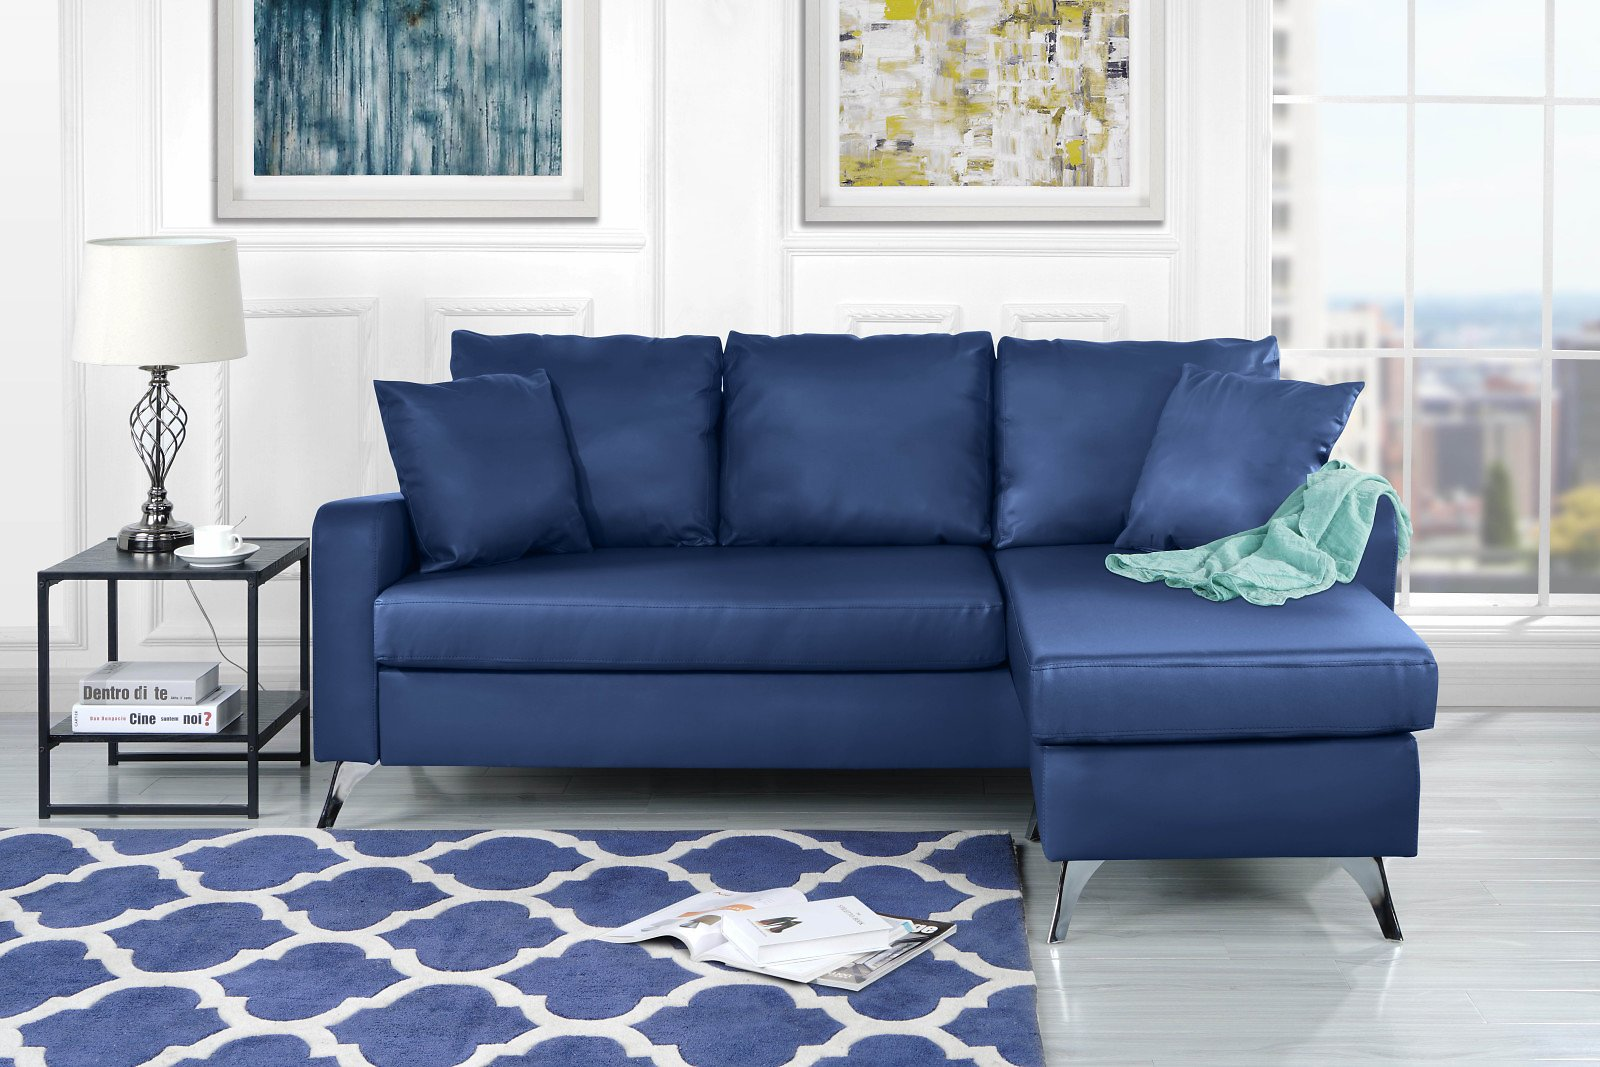 Mobilis Bonded Leather Sectional Sofa - Small Space Configurable Couch, Blue